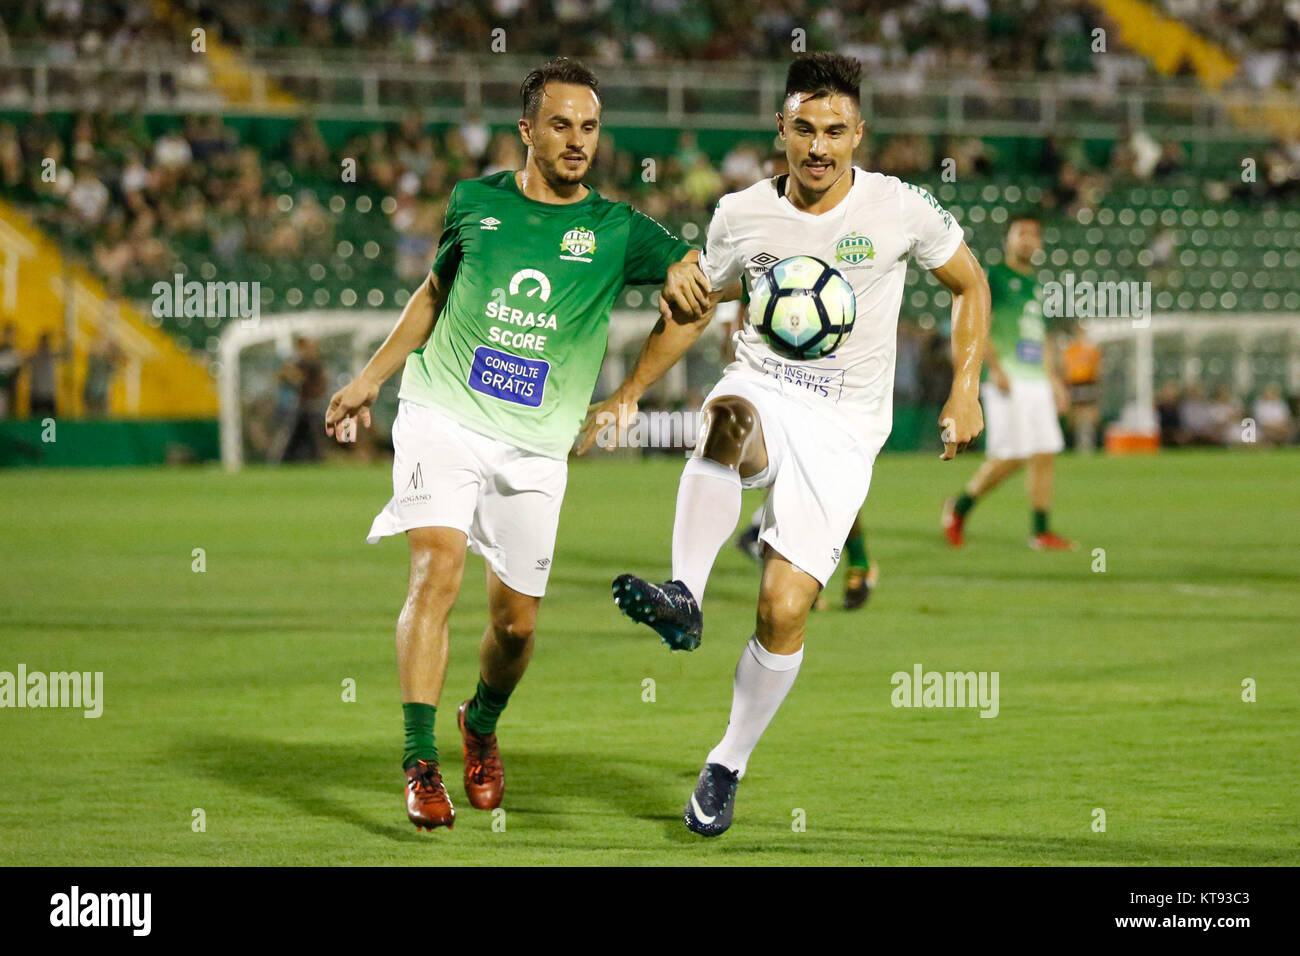 CHAPEC', SC - 22.12.2017: GAME OF THE STARS FRIENDS OF TITE X CARILL - William Bigode of Friends of Carille, - Stock Image